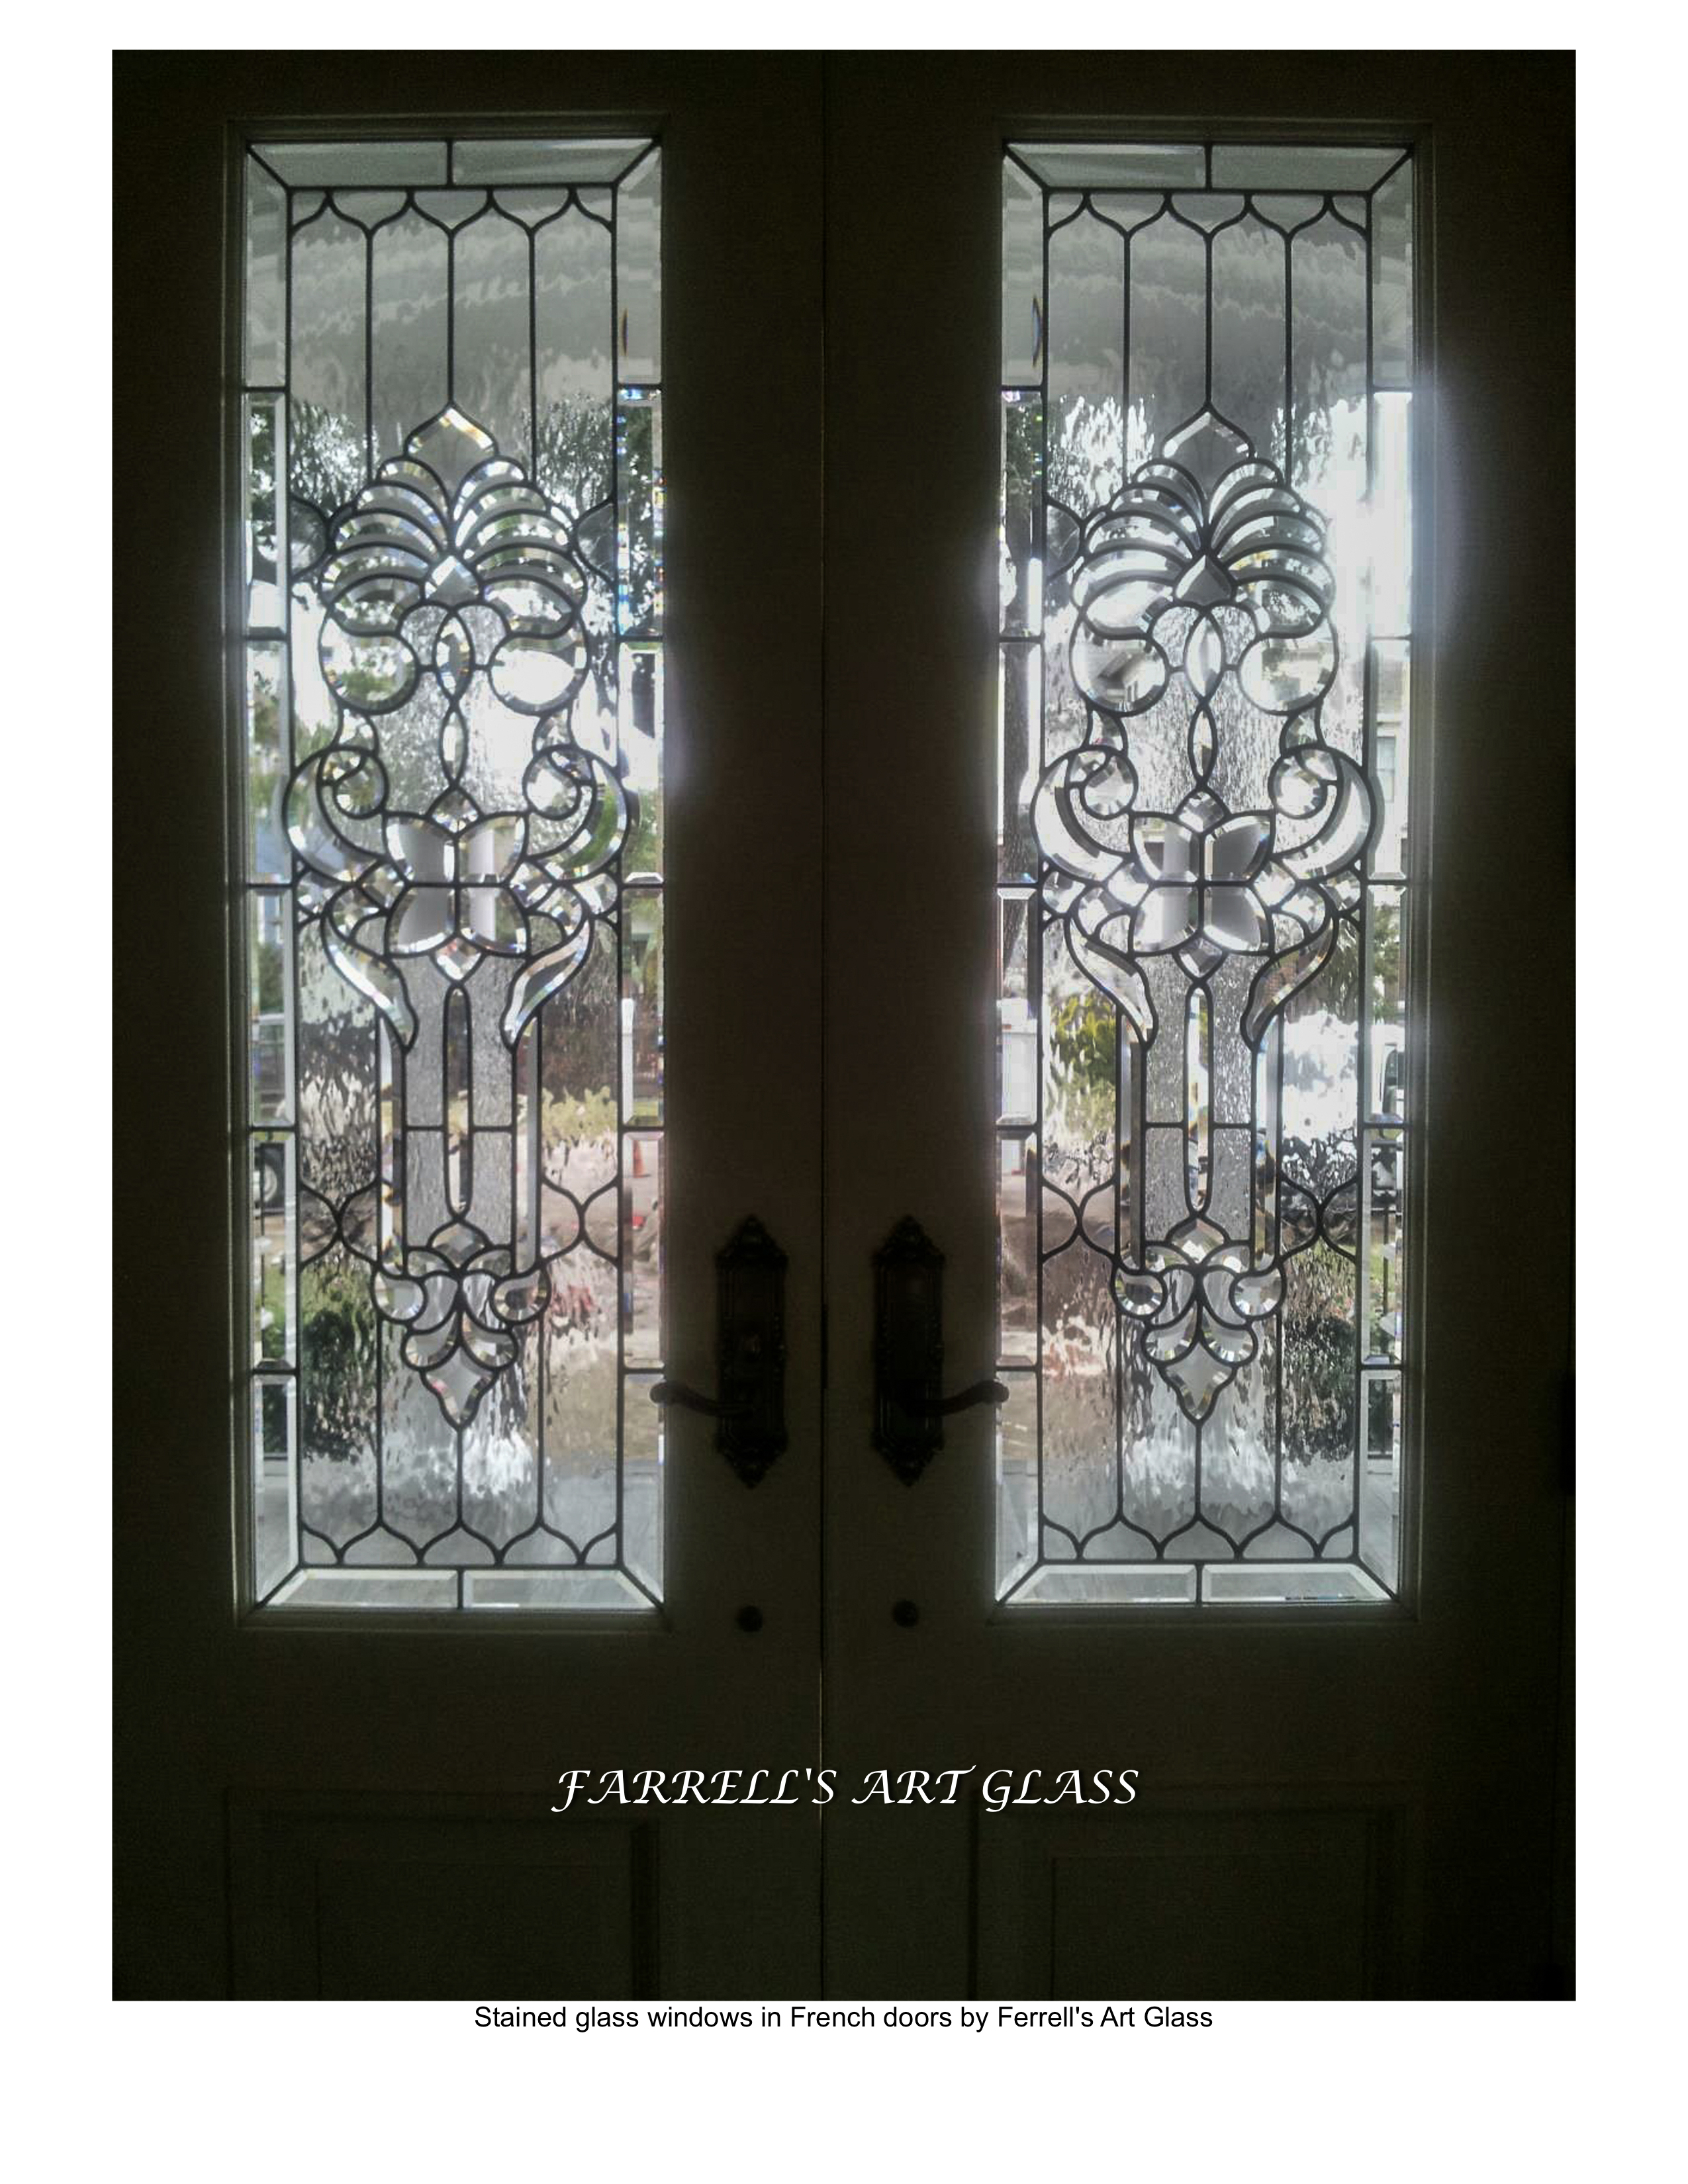 Stained glass windows in french doors by ferrell s art glass for Art glass windows and doors